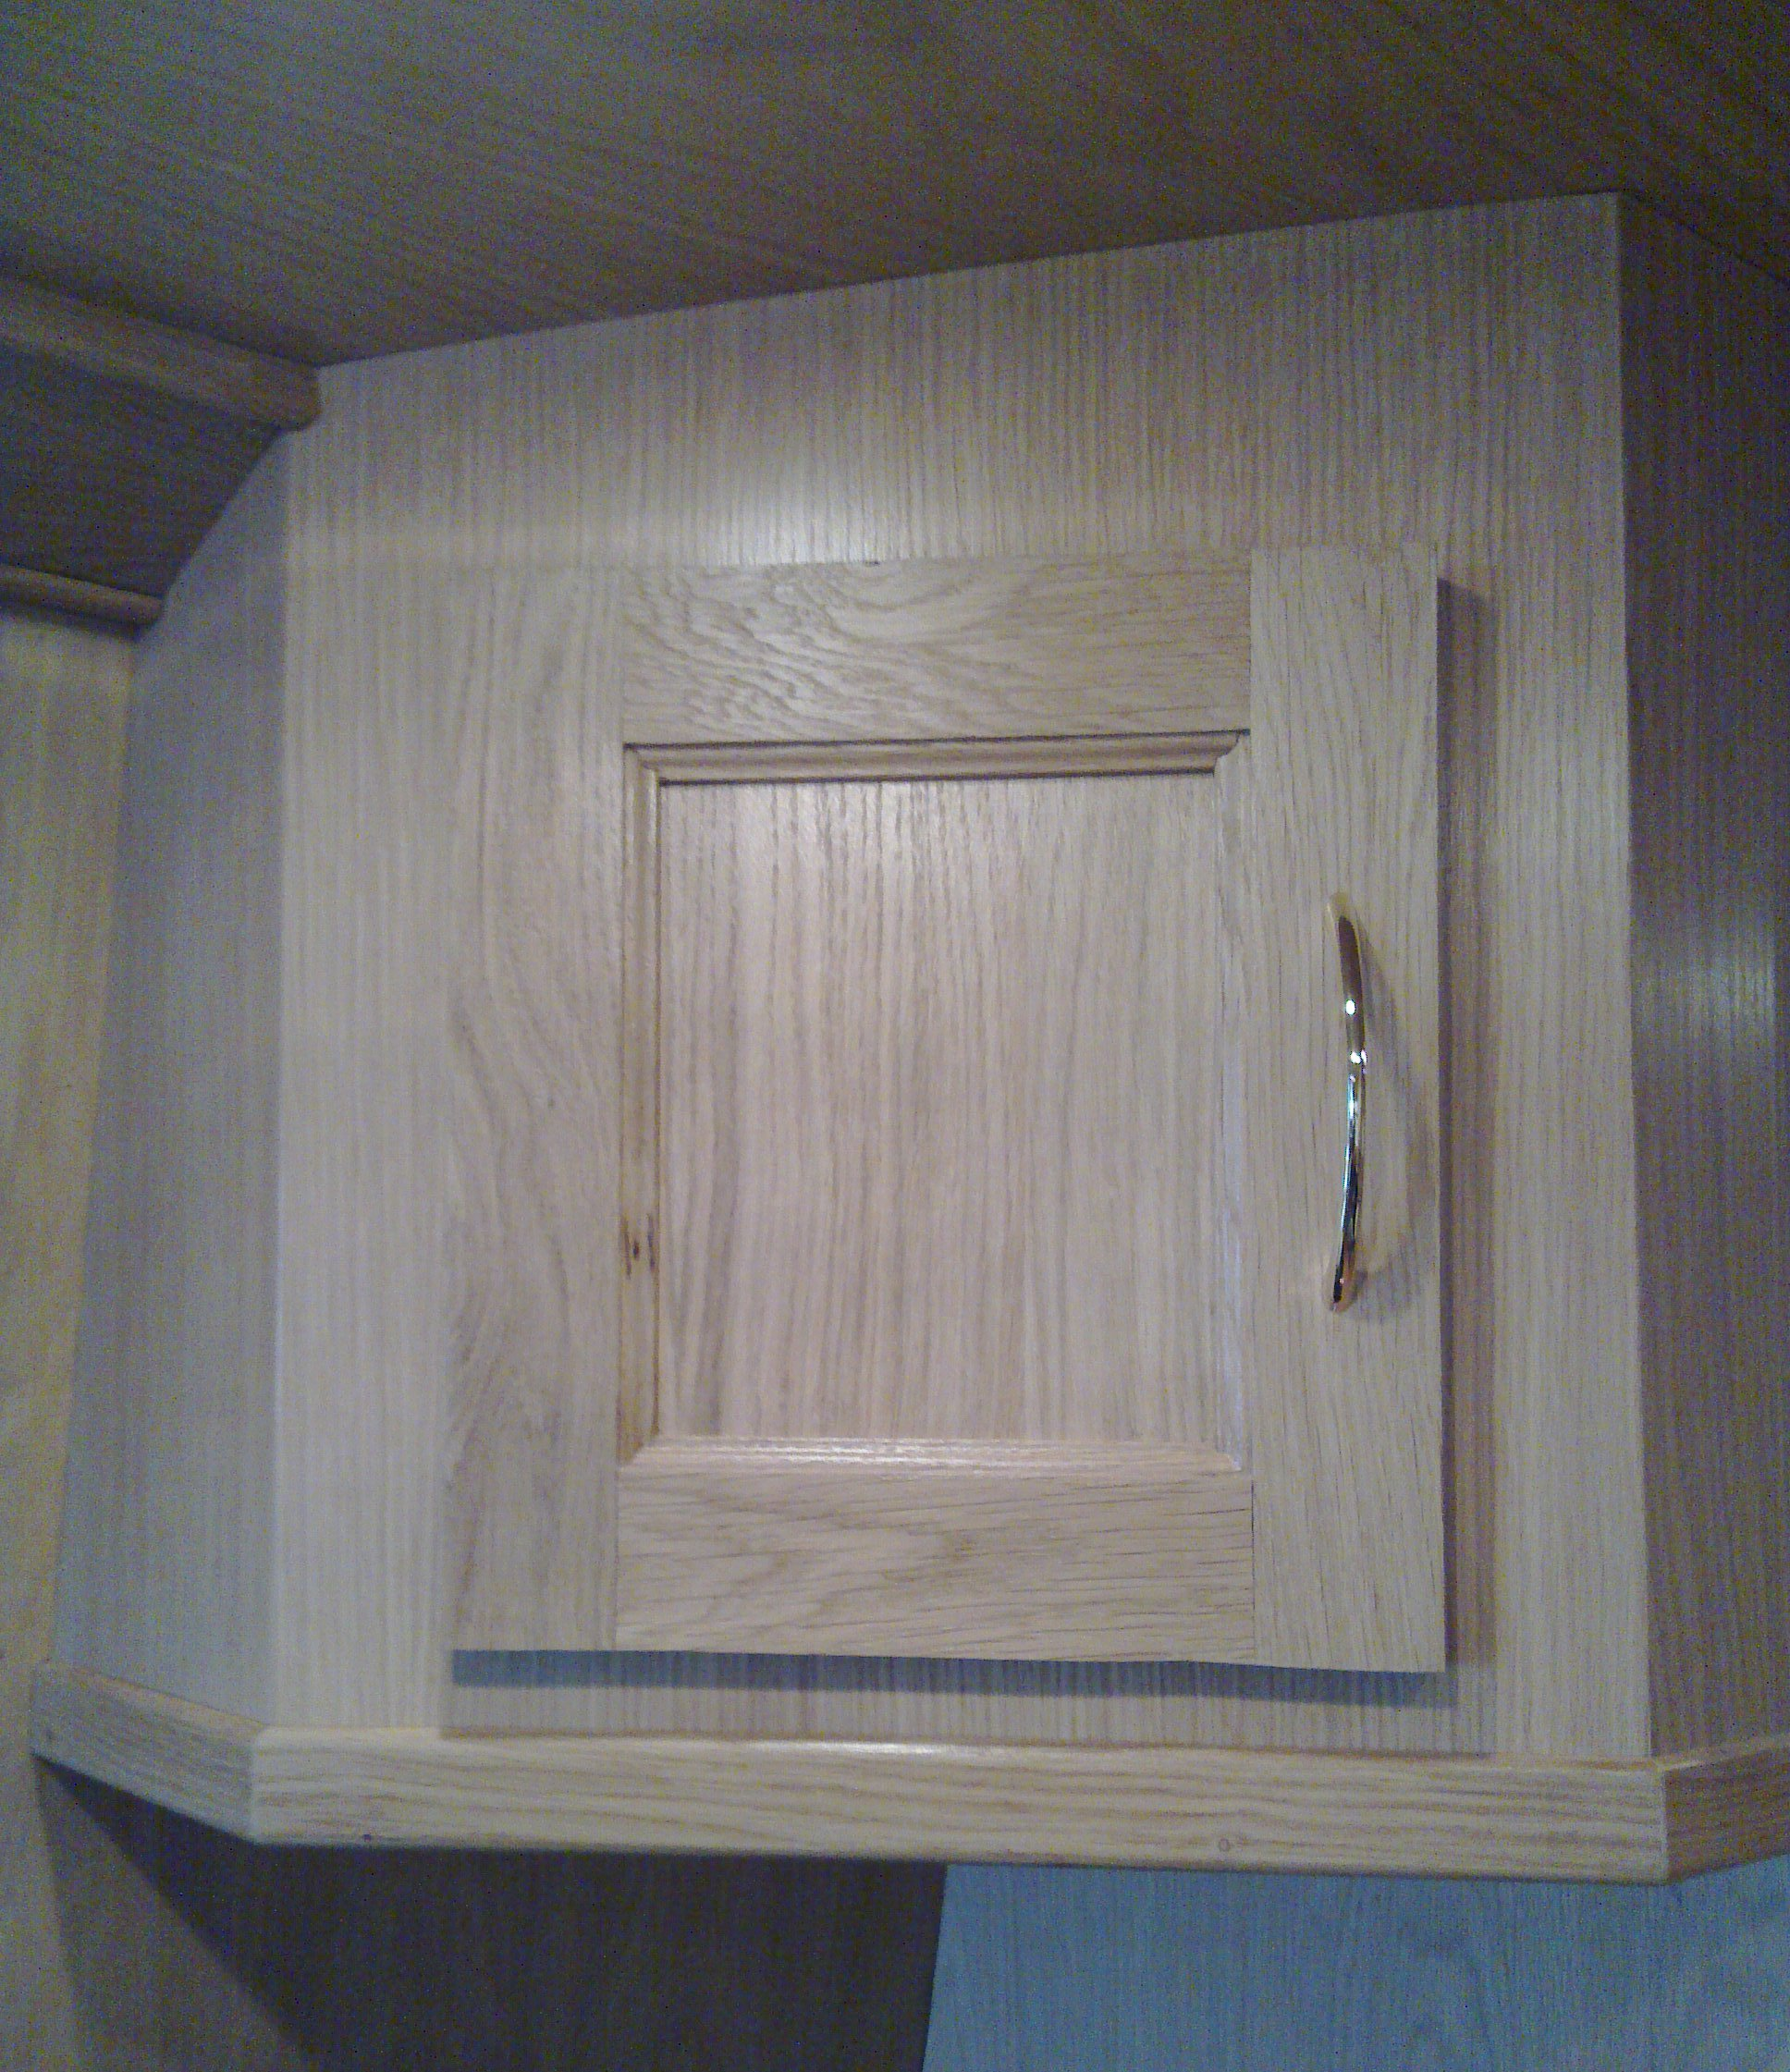 SMALL CUPBOARD 1 - OAK.jpg